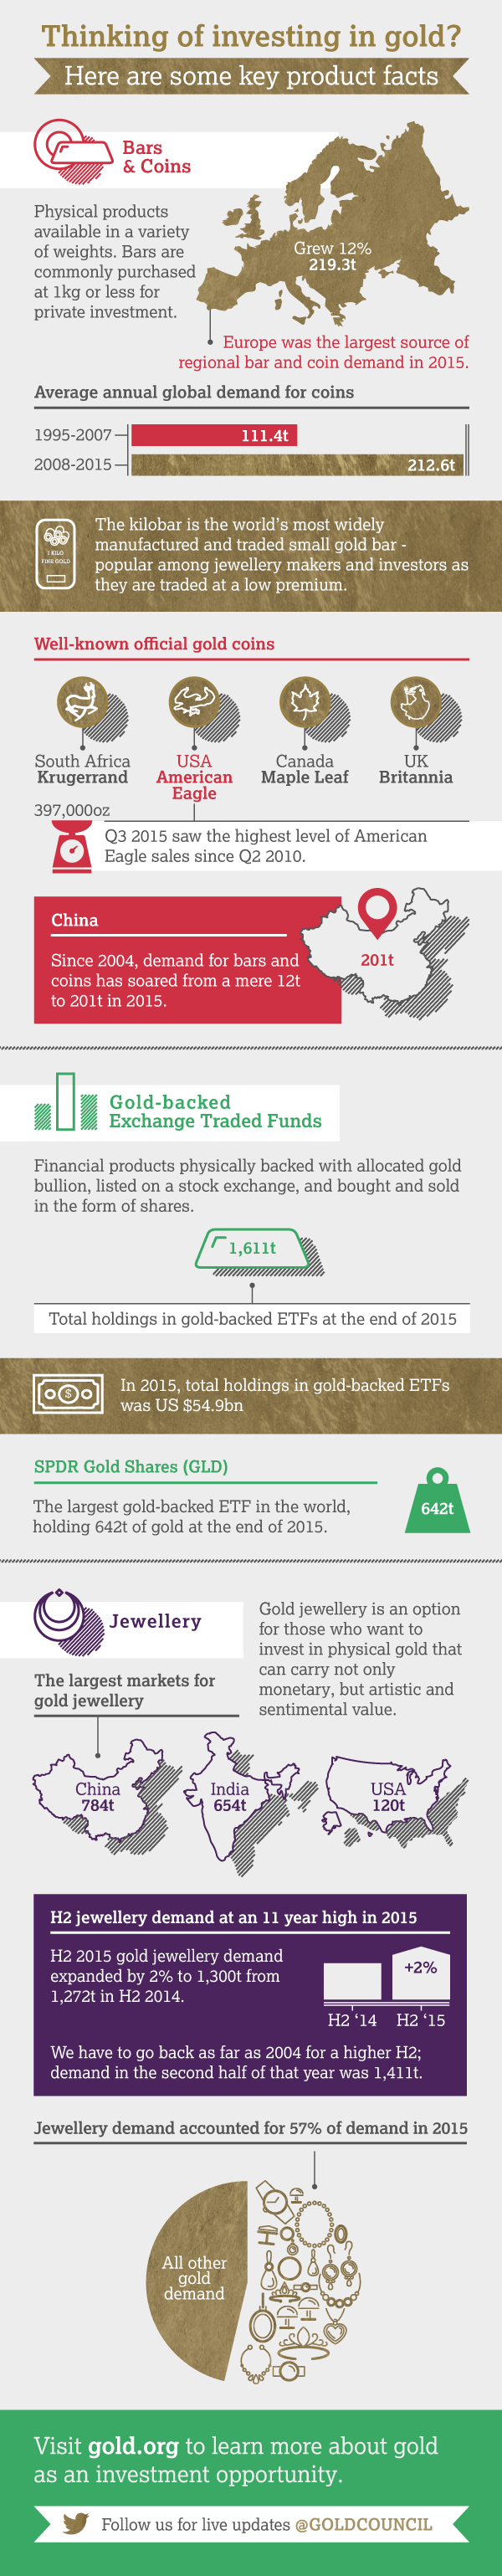 Download our gold investment infographic; explaining key gold product groups. This graphic focusses on Bars & Coins, Gold-backed Exchange Traded Funds and Jewellery.